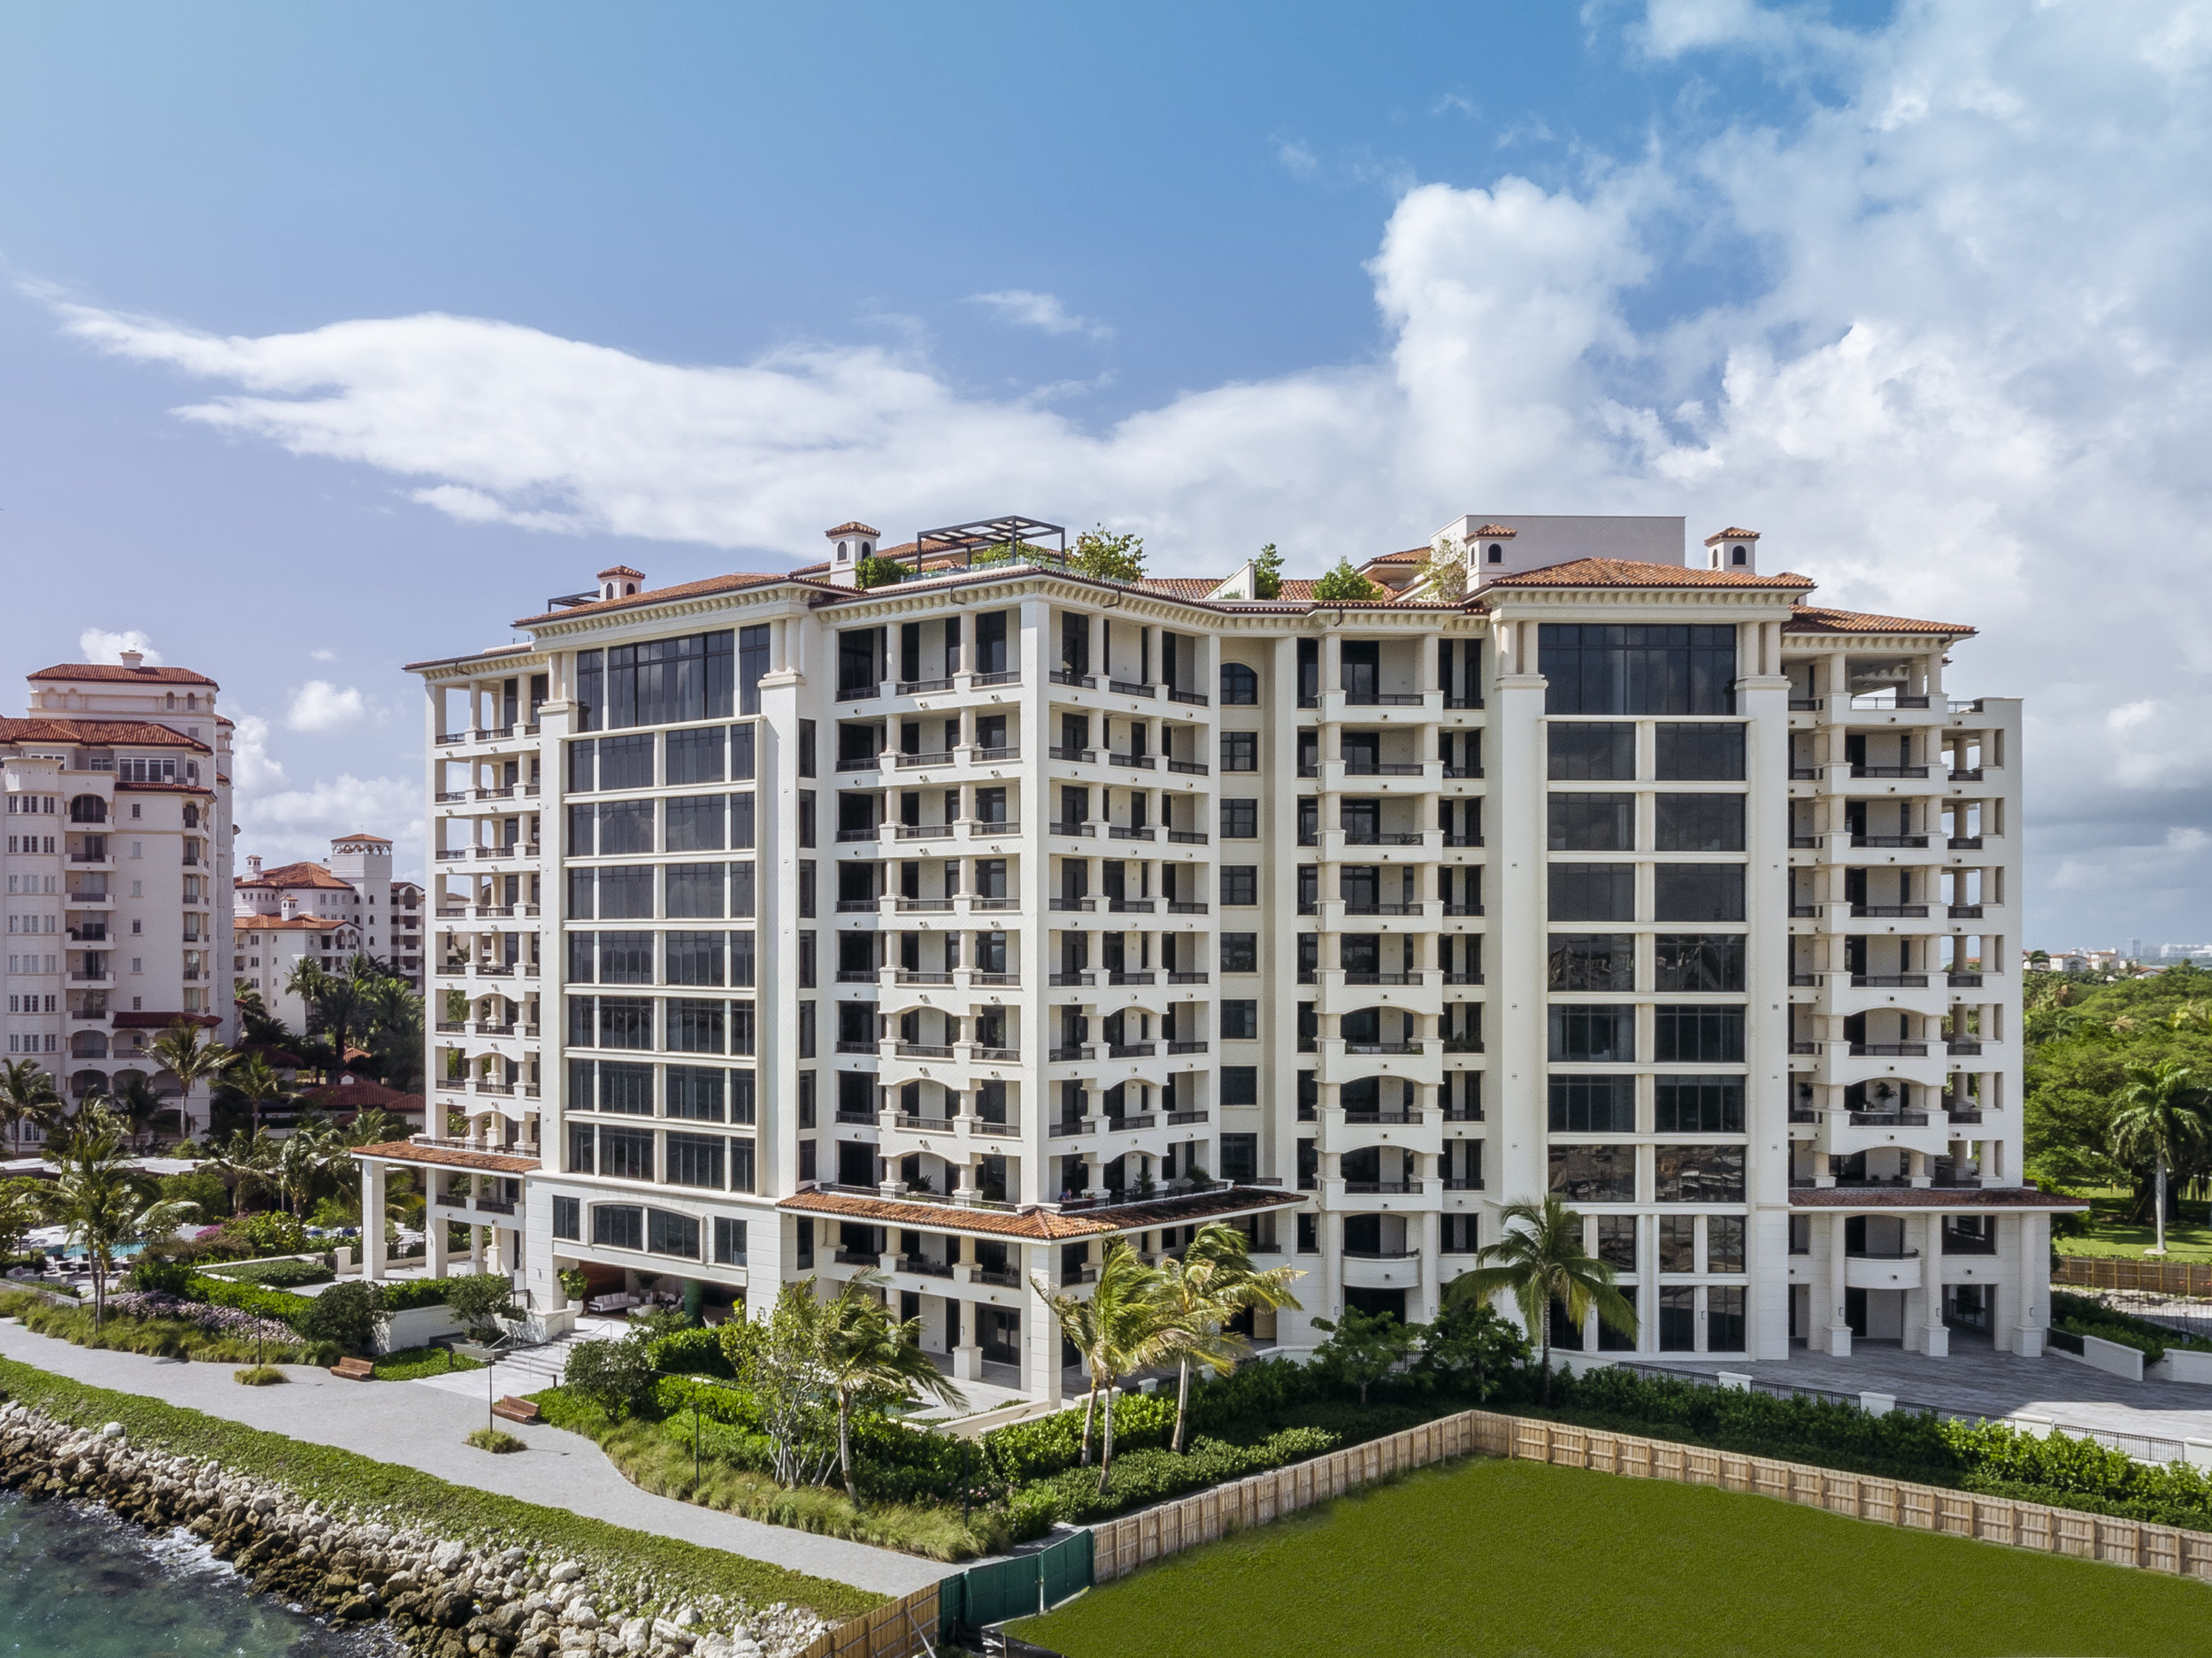 Strong Sales Reported At The Kobi Karp-Designed Ultra-Luxury Palazzo Del Sol On The Exclusive Fisher Island